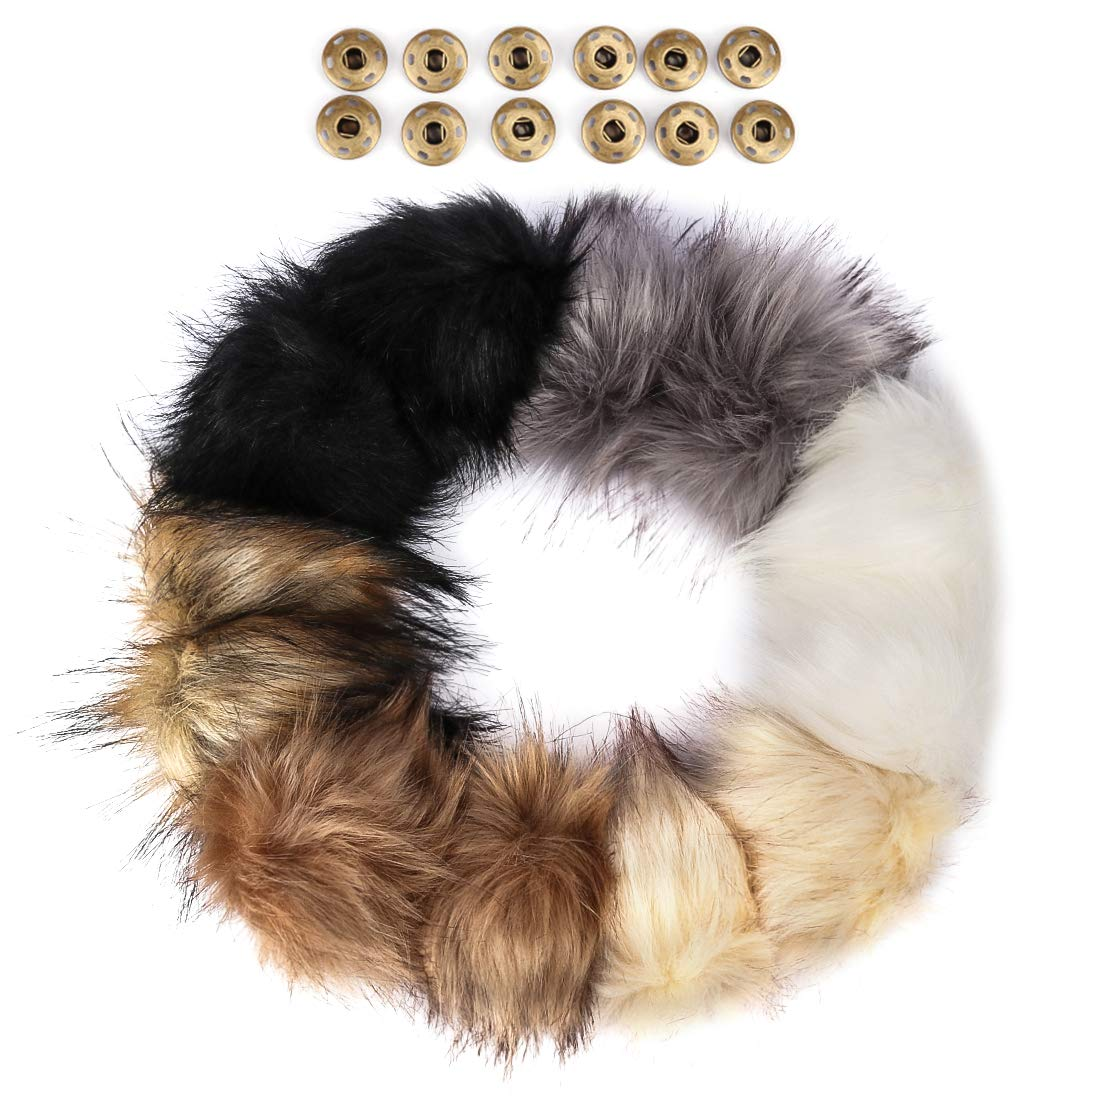 ANBALA 12 Pieces Faux Fox Fur Pompom for Knitting Hat Scarves with Press Buttons Detachable